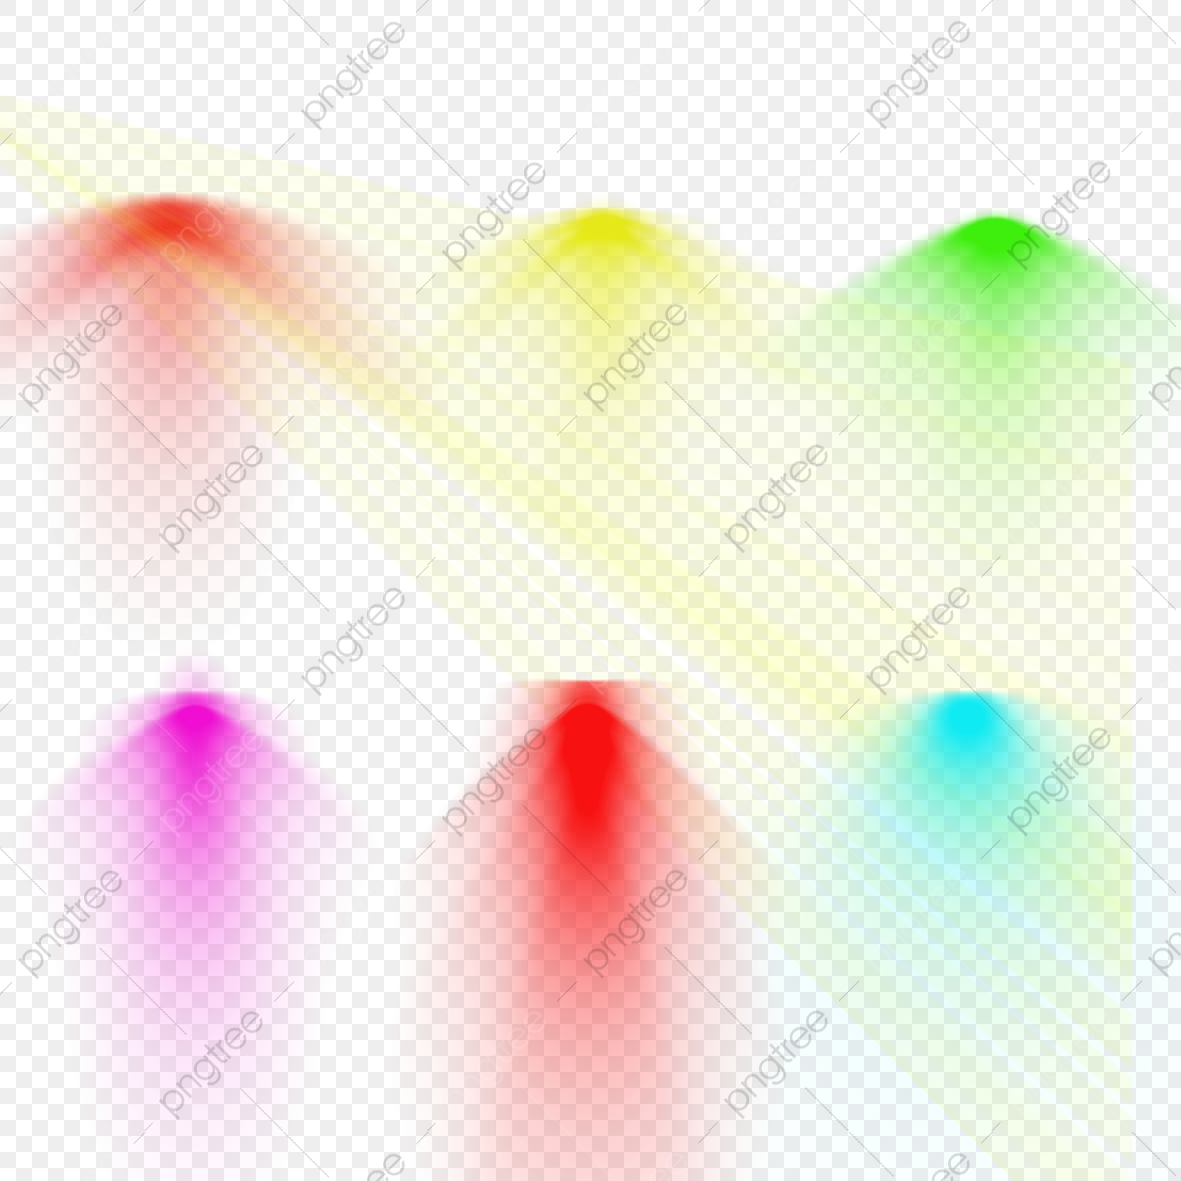 Nightclub Lights, Color, Cartoon, Nightclub PNG Transparent.